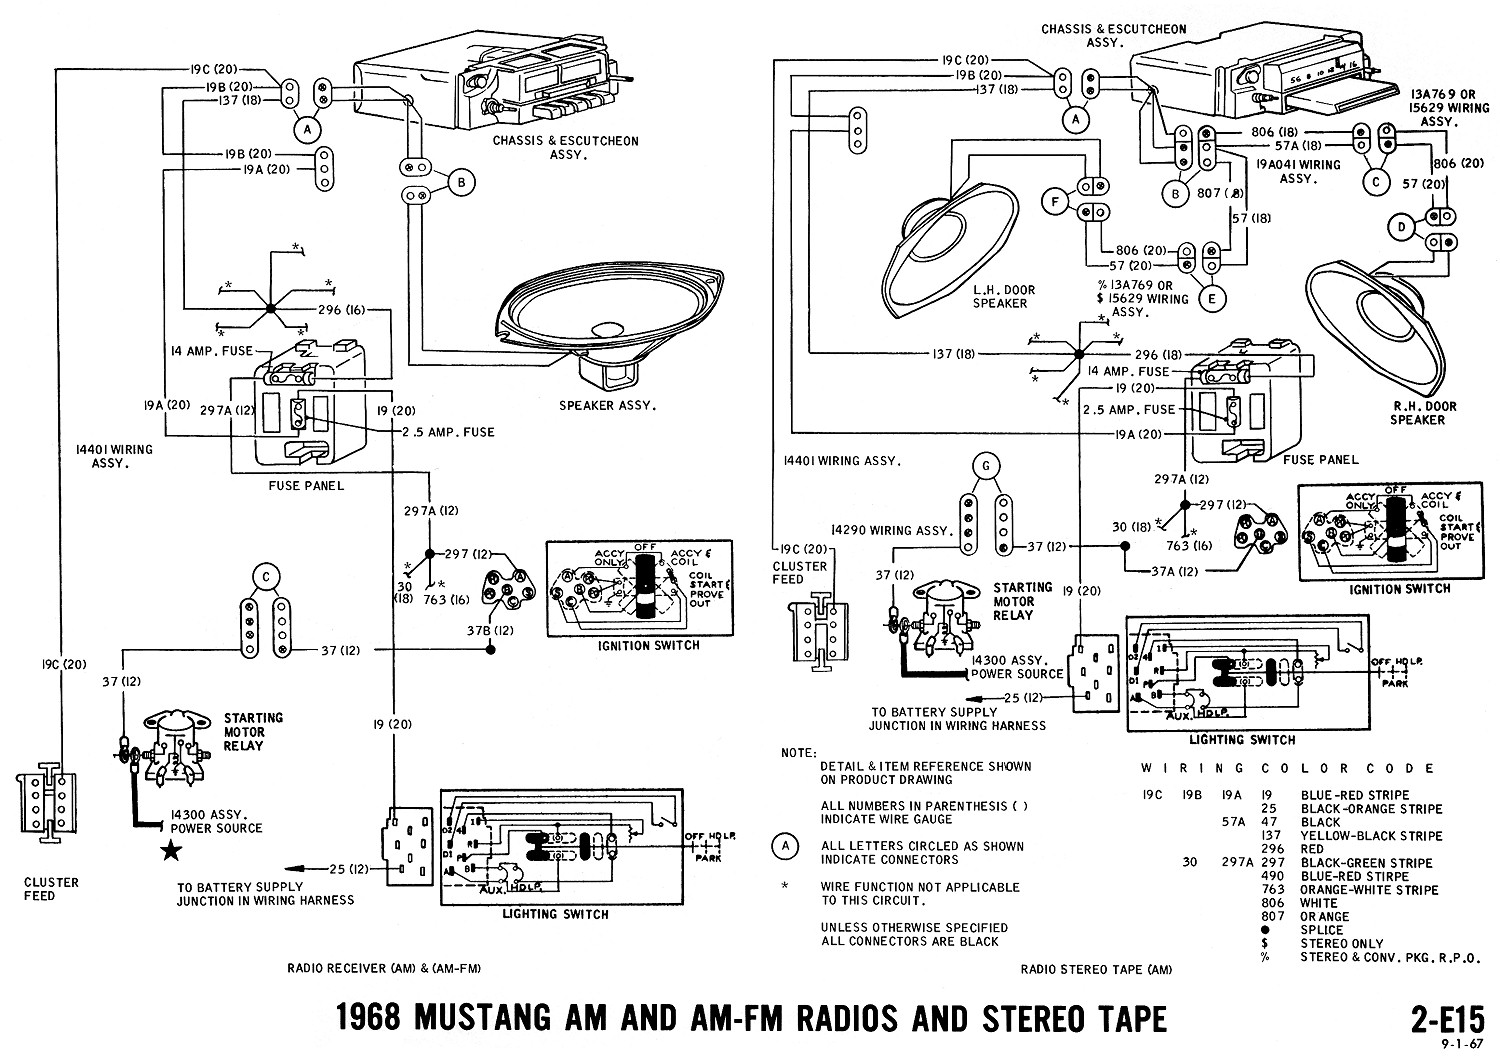 1968 Mustang Wiring Diagrams as well 422046 also Milliard Super Heavy Duty Metal Bed Frame With Rug Rollers in addition Mustang Coloring Pages Ford Coloring Pages Fast Car Coloring Pages Coloring Police Car Pages Cool Great Fast Fast Car Ford Coloring Pages Mustang Race Car Coloring Pages together with Mustang carbon fiber insert. on 2015 gt500 cobra